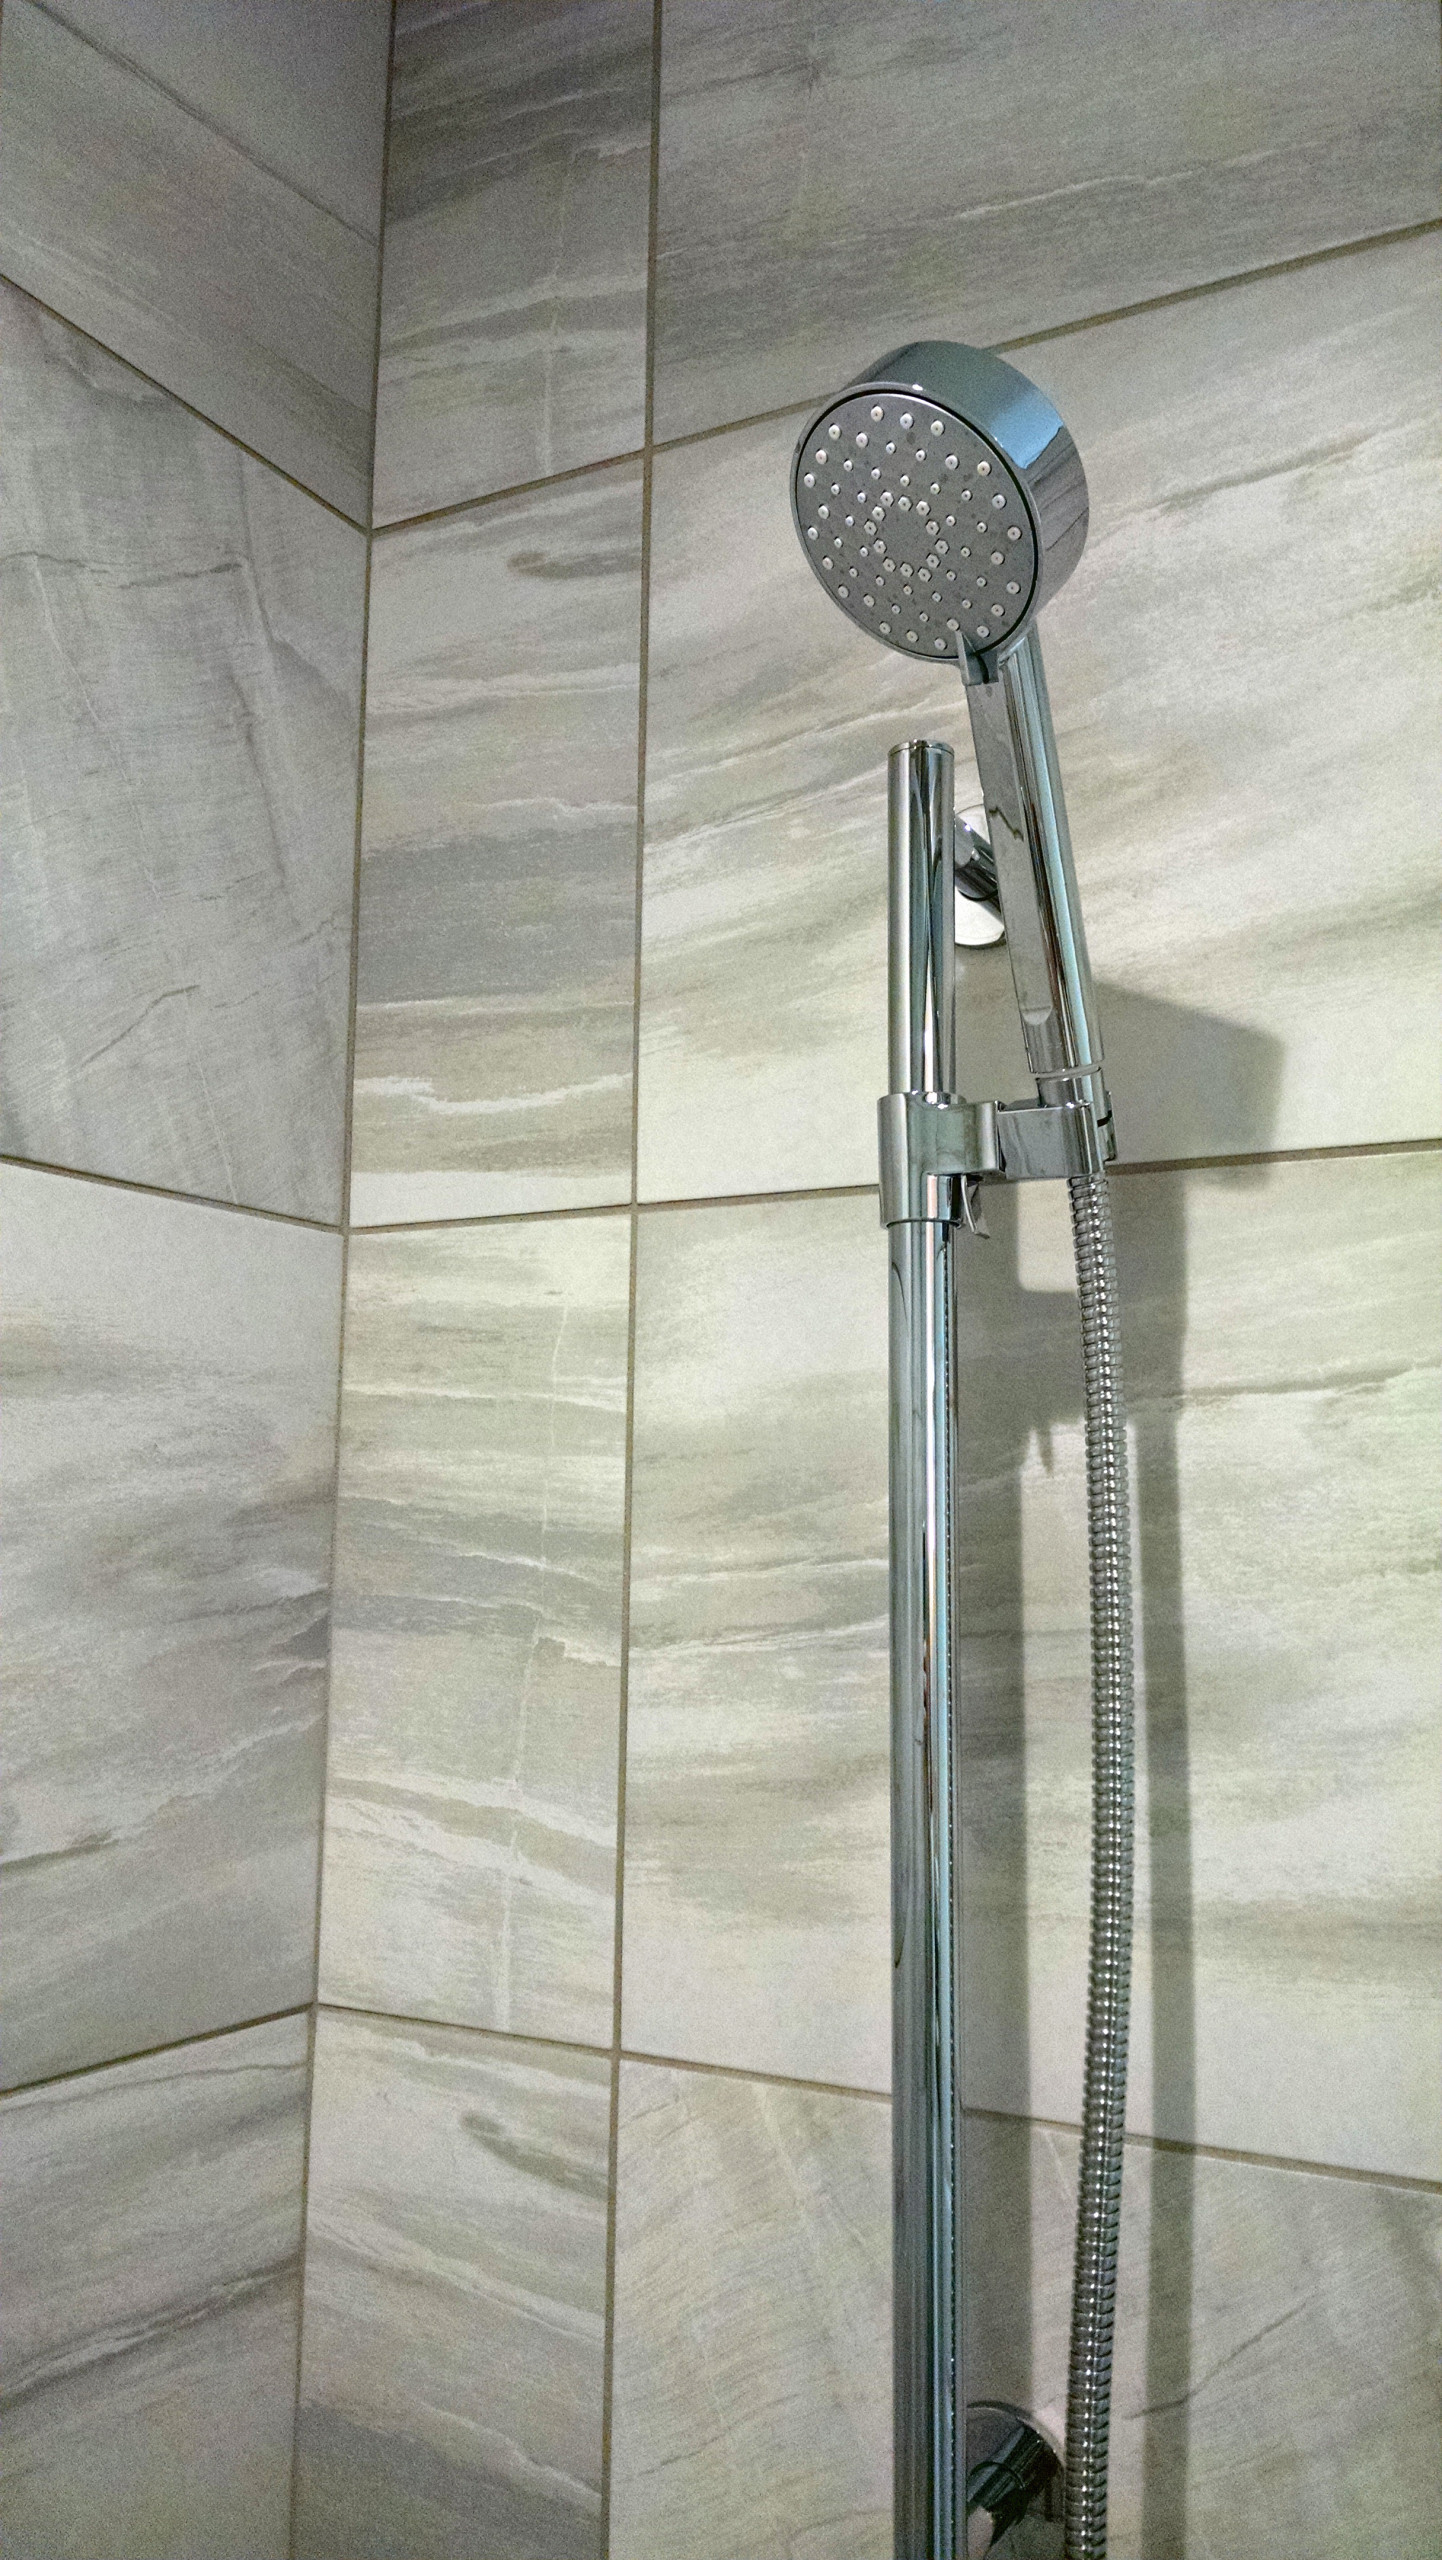 Showers of goodness